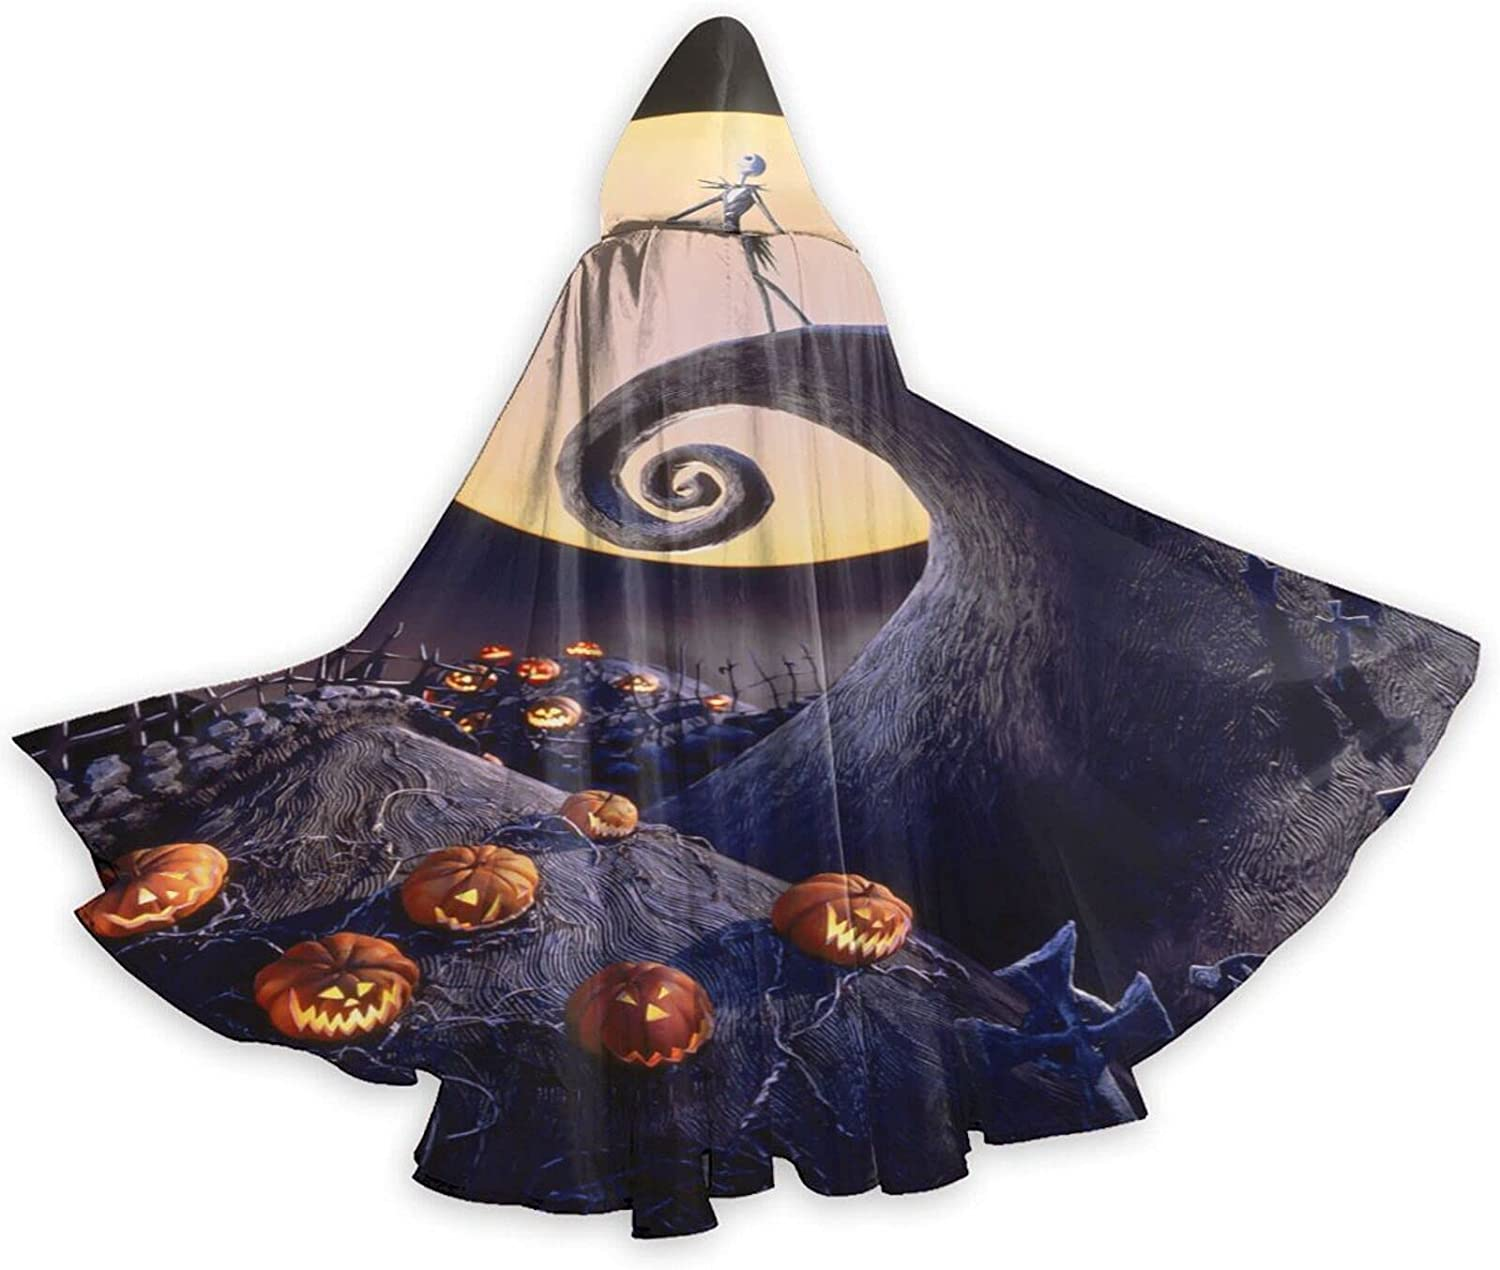 Unisex Night-mare Before Christmas Wizard Hooded Robe Halloween Max 78% OFF Year-end gift